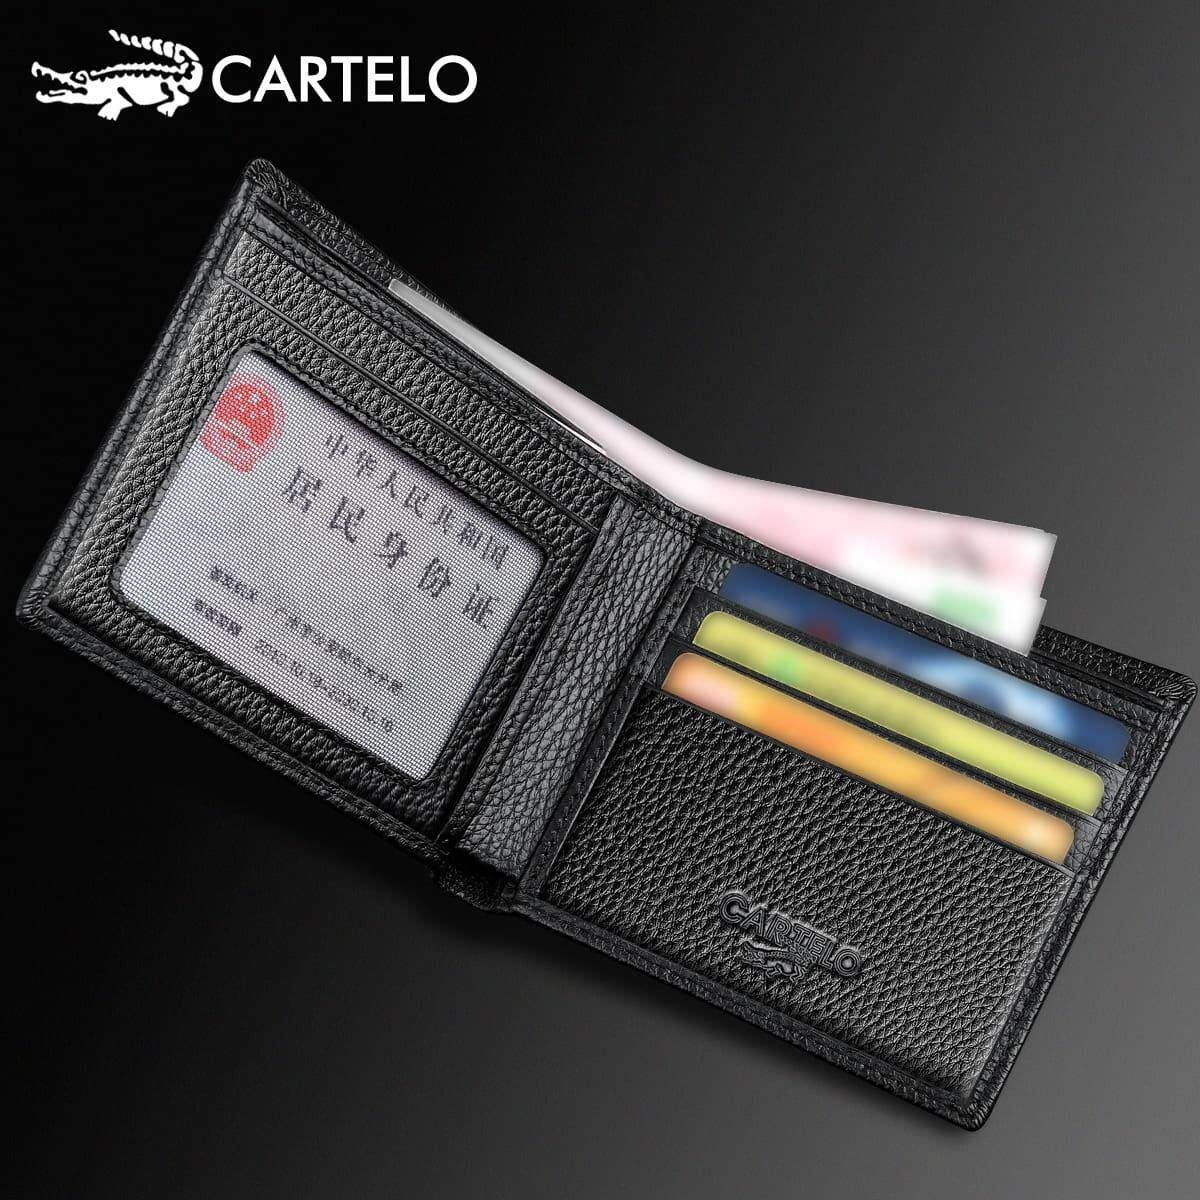 [Ready Stock] 100% Cowhide Leather Cartelo Since 1947 Singapore Men's Fashion Wallet Bi-Fold / Vertical Fengshui Perfect Gift For Love One (Come With Box) Clutch Card Coins Cash Slot With Zip Portable Hand Carry Bag Top Material Halal Dompet Kulit